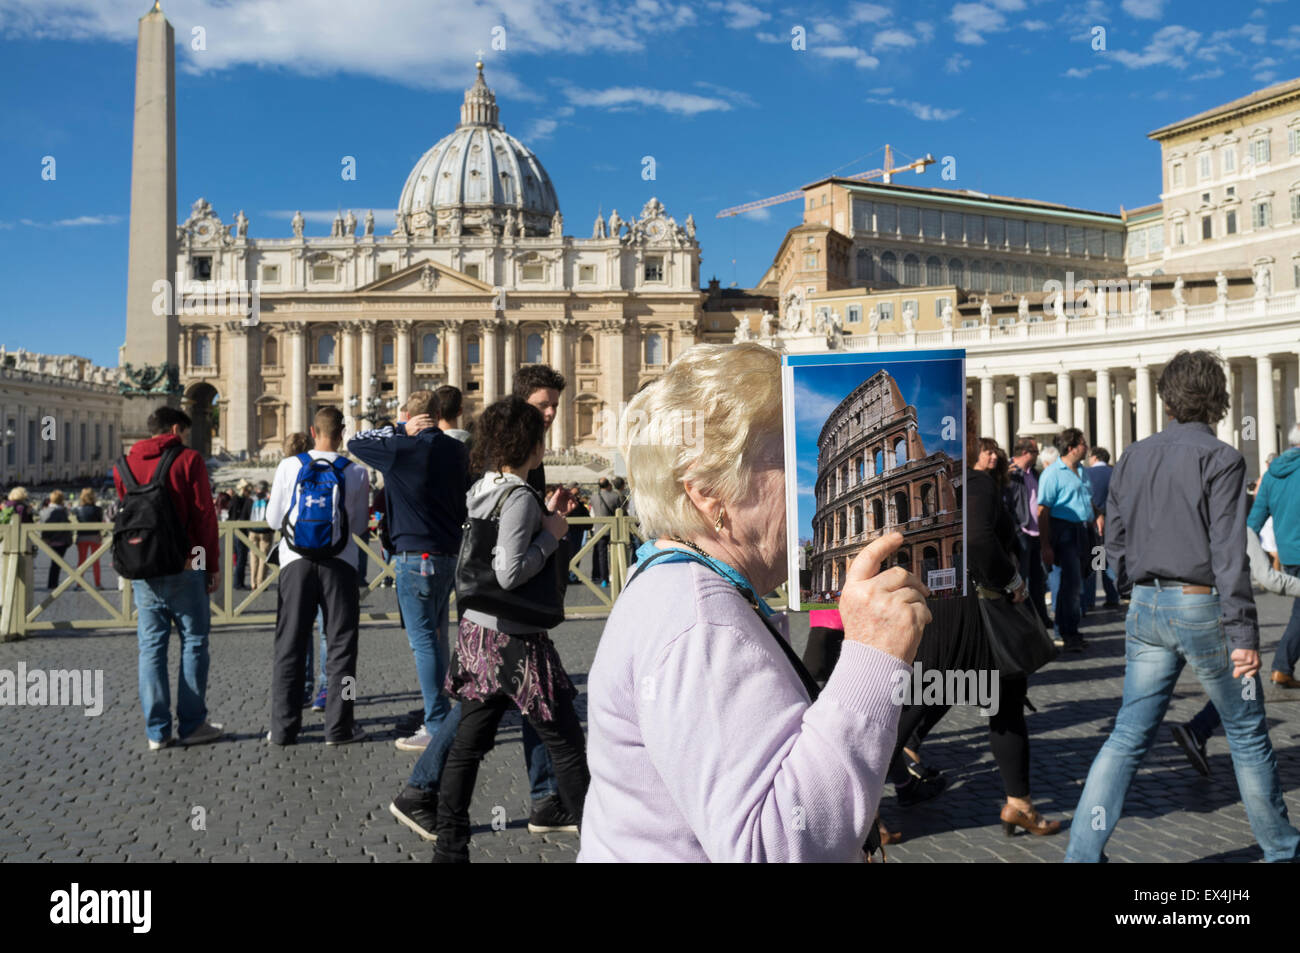 Tourists at St. Peter's square, Vatican, Rome, Italy - Stock Image